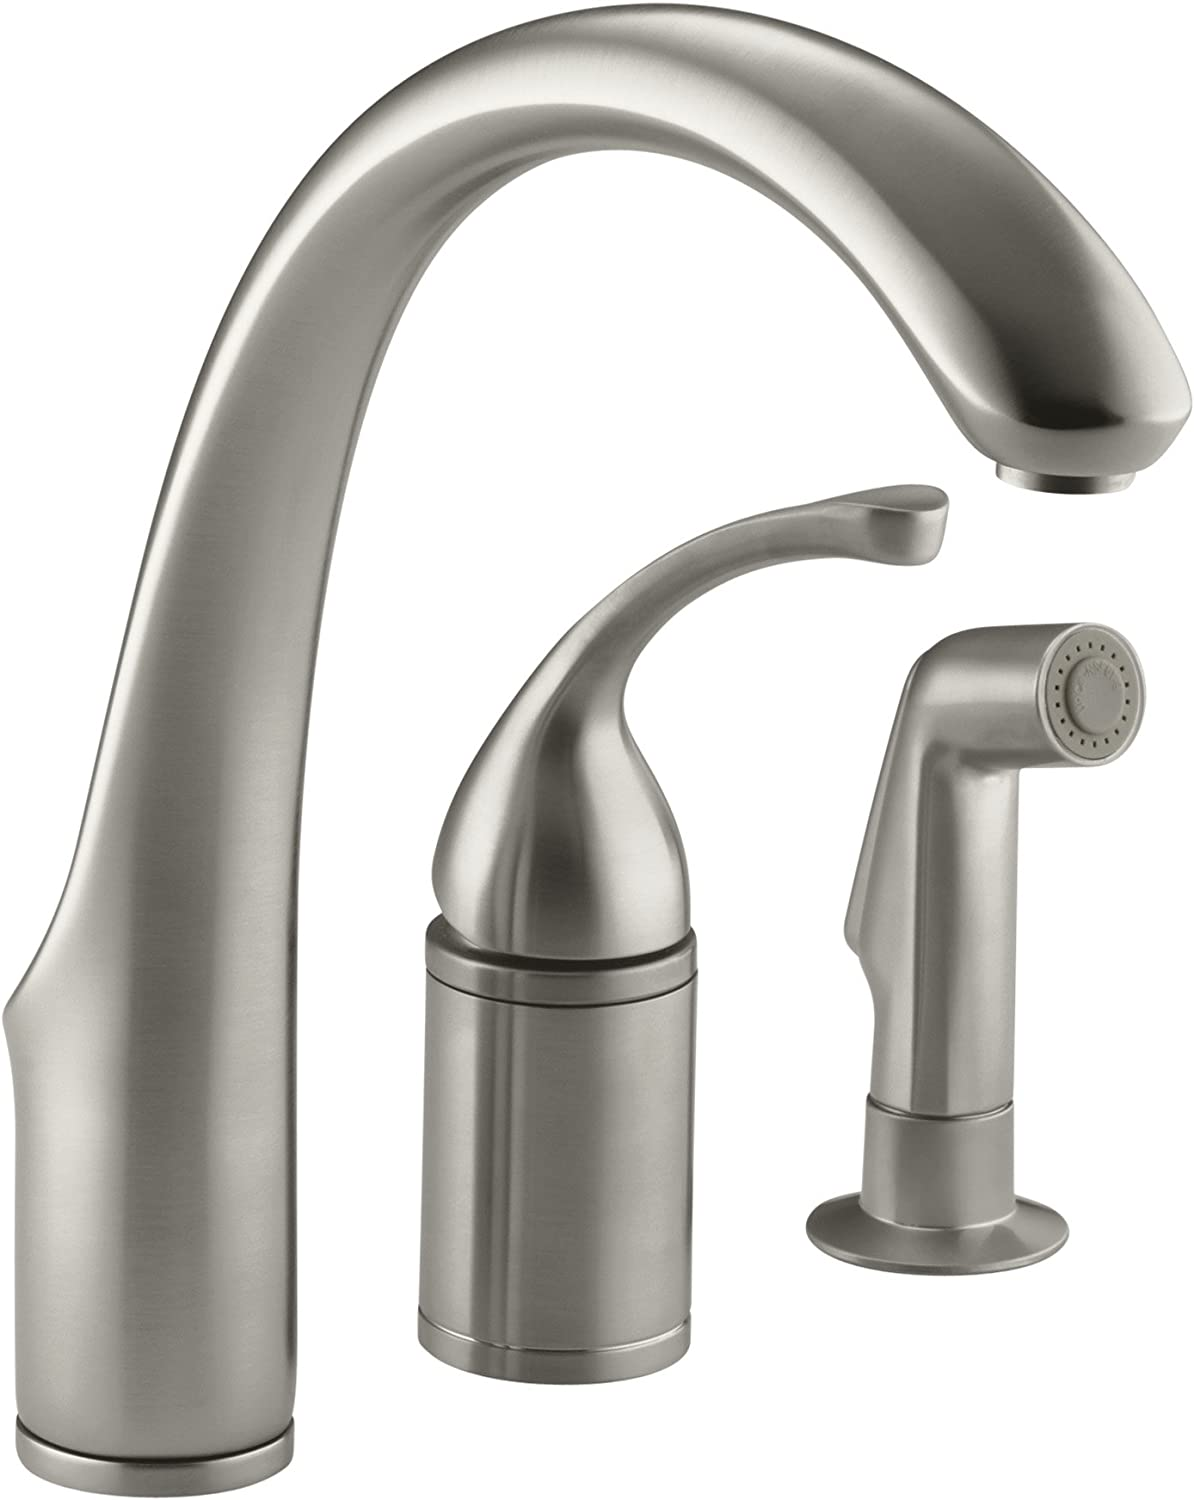 KOHLER K-10430-BN Fort R 3-Hole Remote Valve Sink 9 spout with Matching Finish sidespray Kitchen Faucet, Vibrant Brushed Nickel